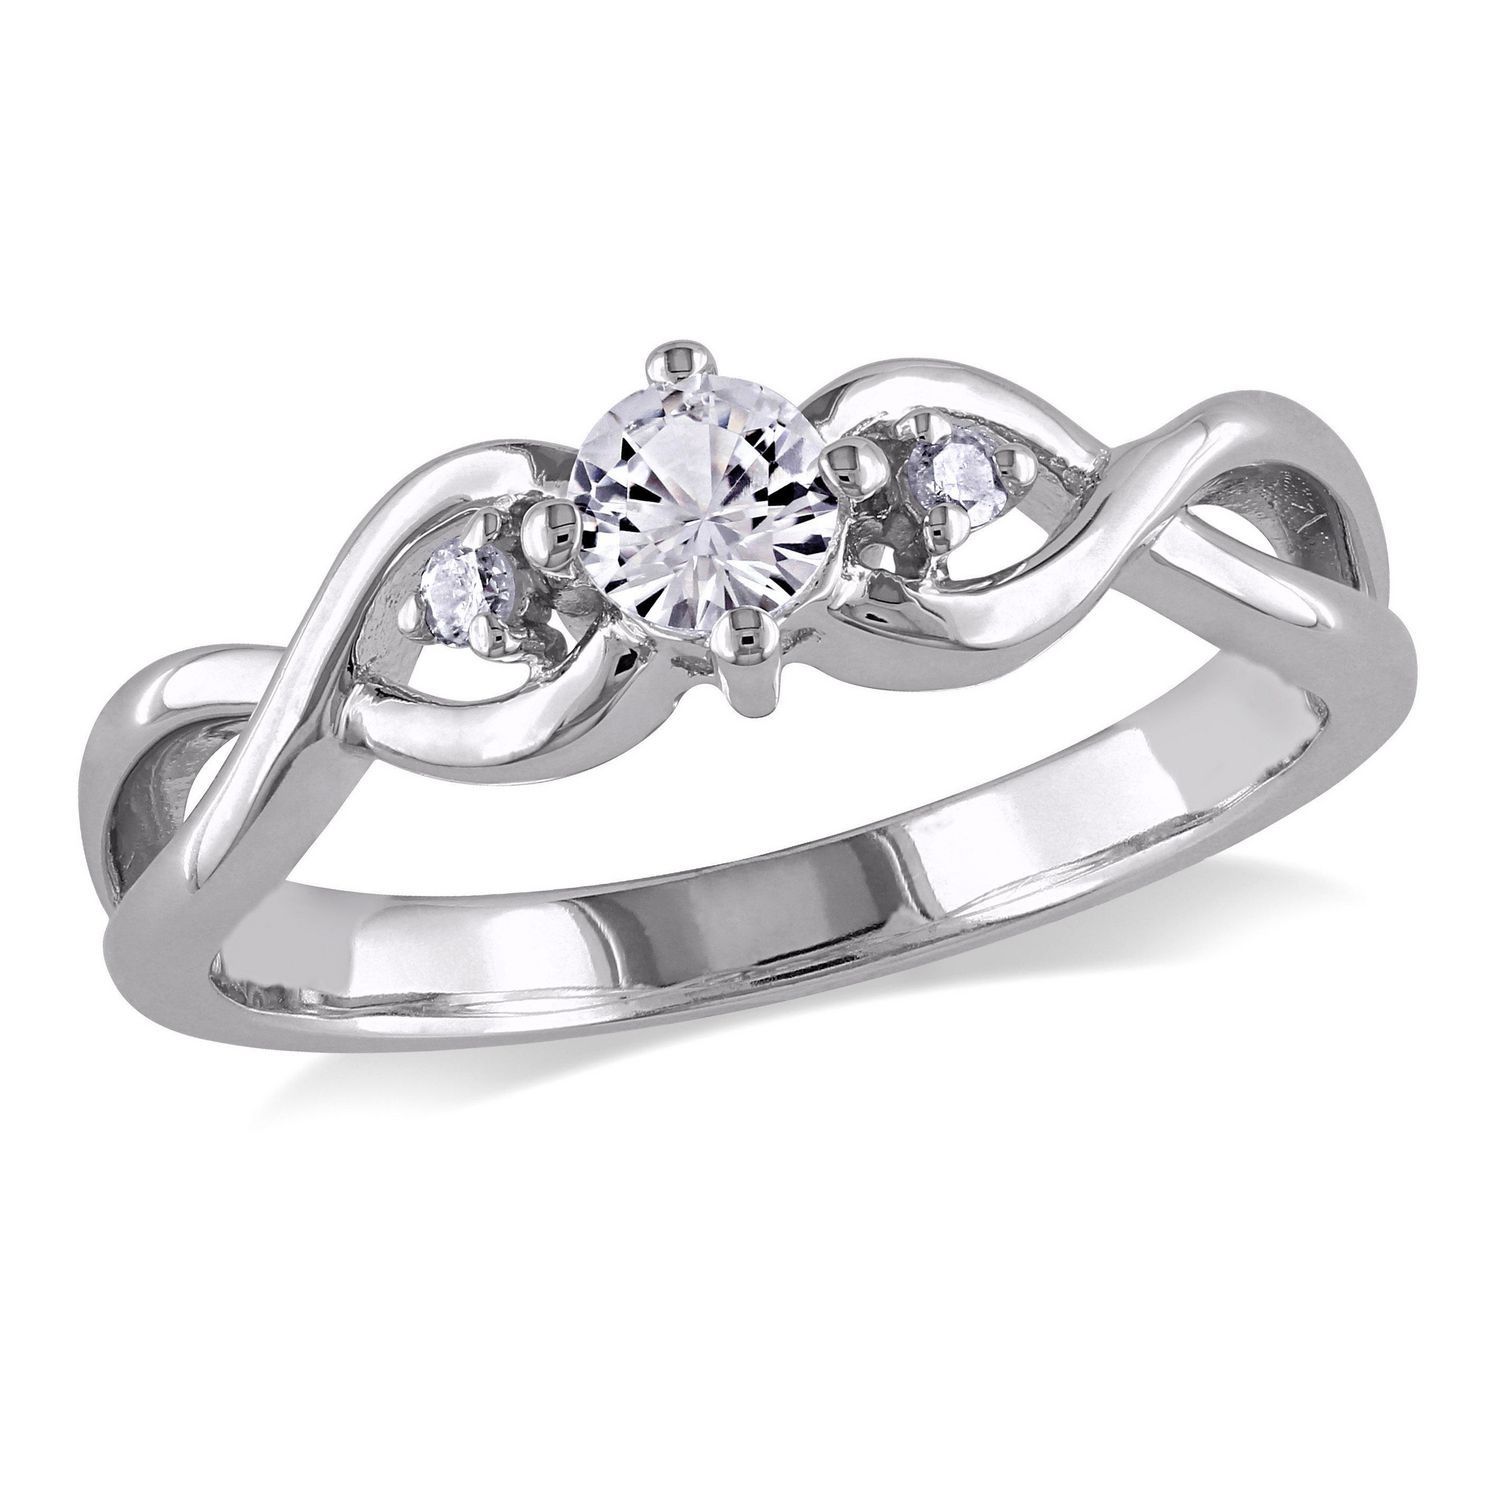 rings anello twist engagement gorgeous di wedding ring fidanzamento swirl diamond bellissimo pin